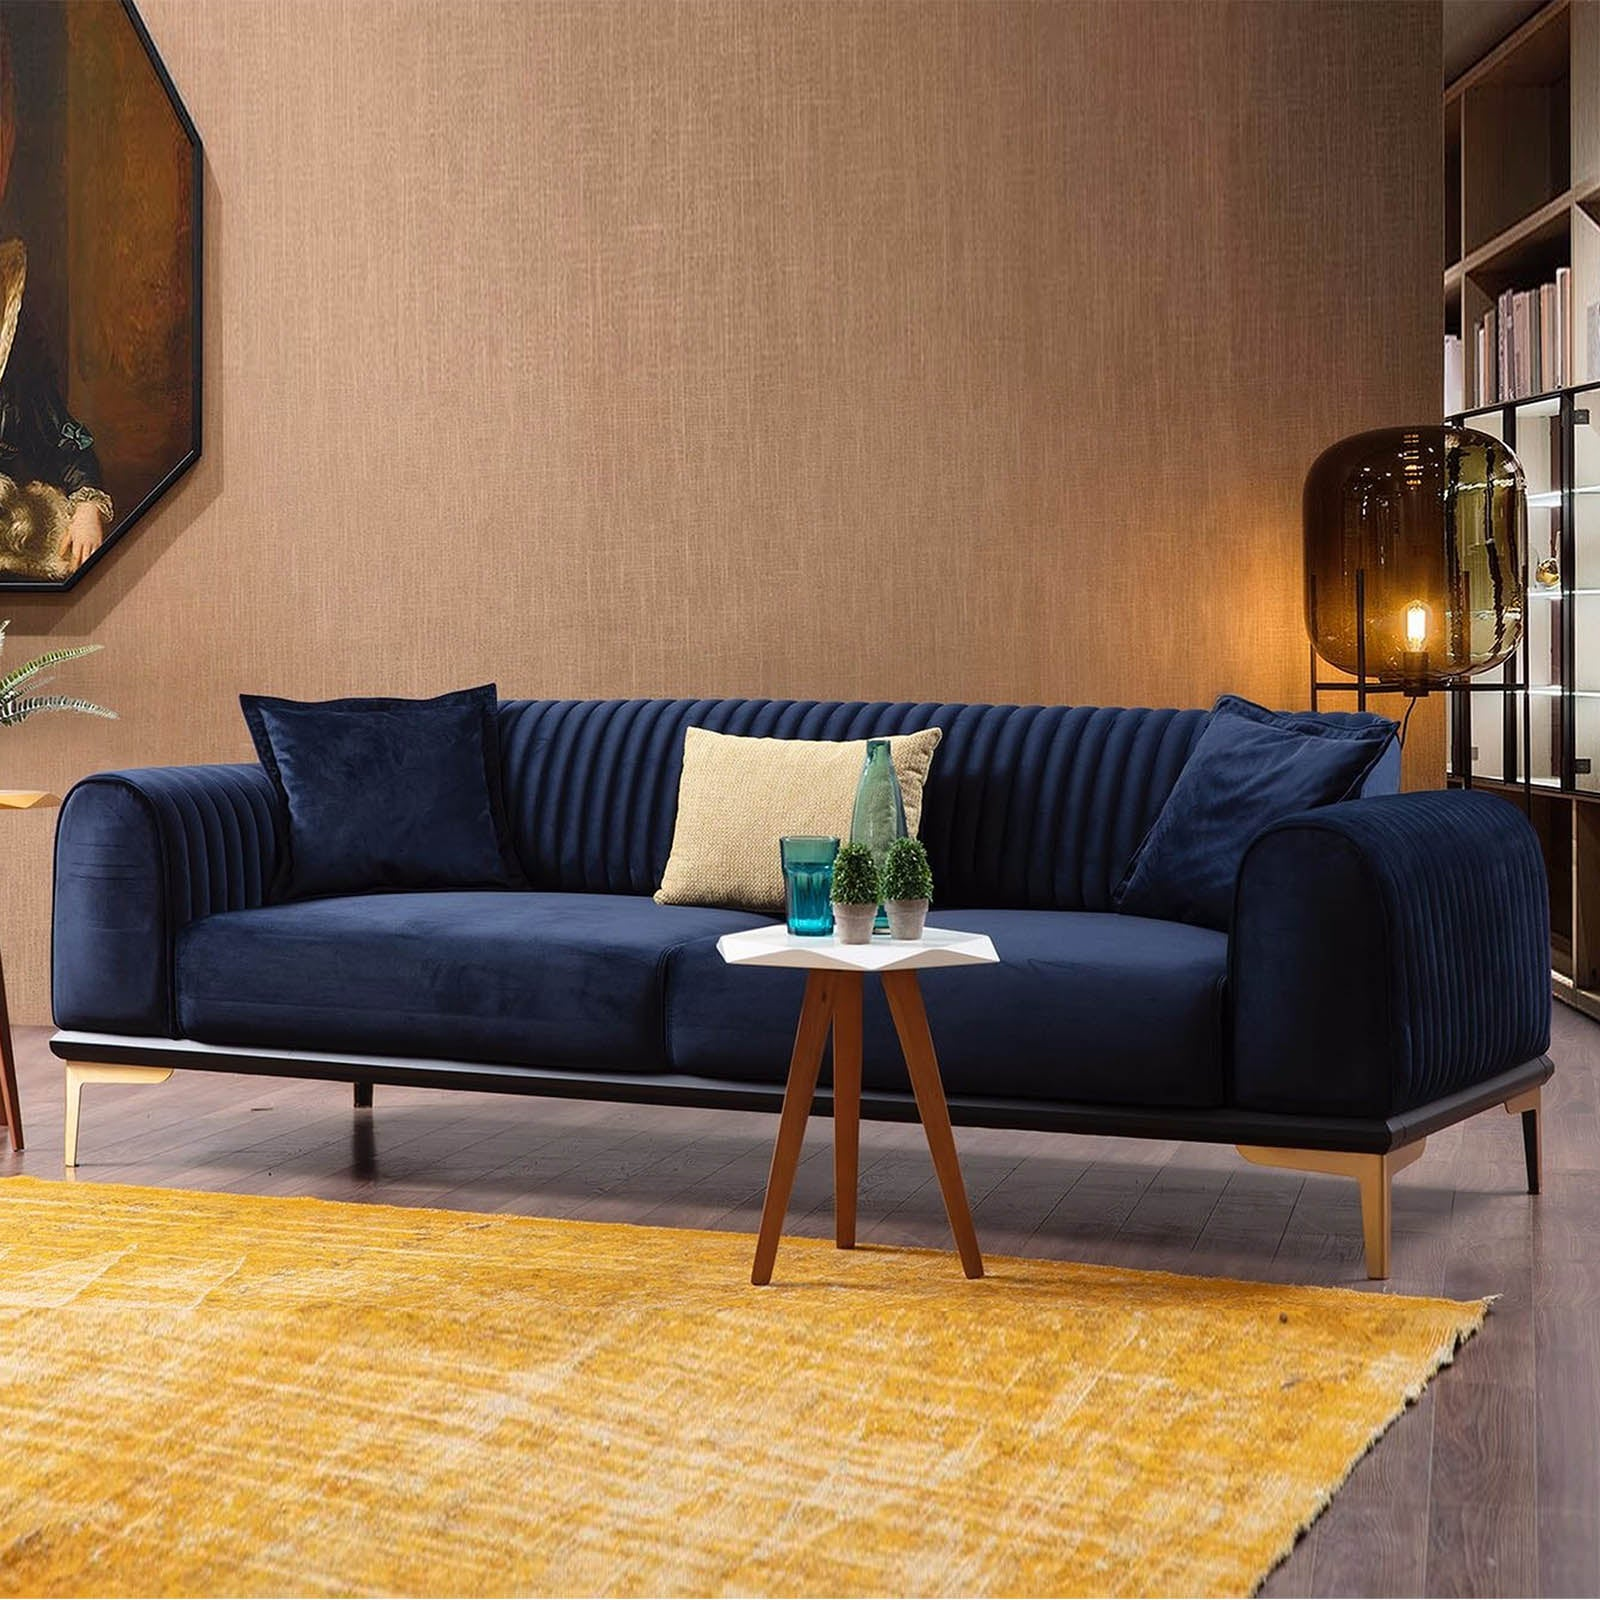 Nirvana 3 Seater Sofa-Bed  NIRV003-BLUE -  أريكة بثلاث مقاعد نيرفانا - Shop Online Furniture and Home Decor Store in Dubai, UAE at ebarza